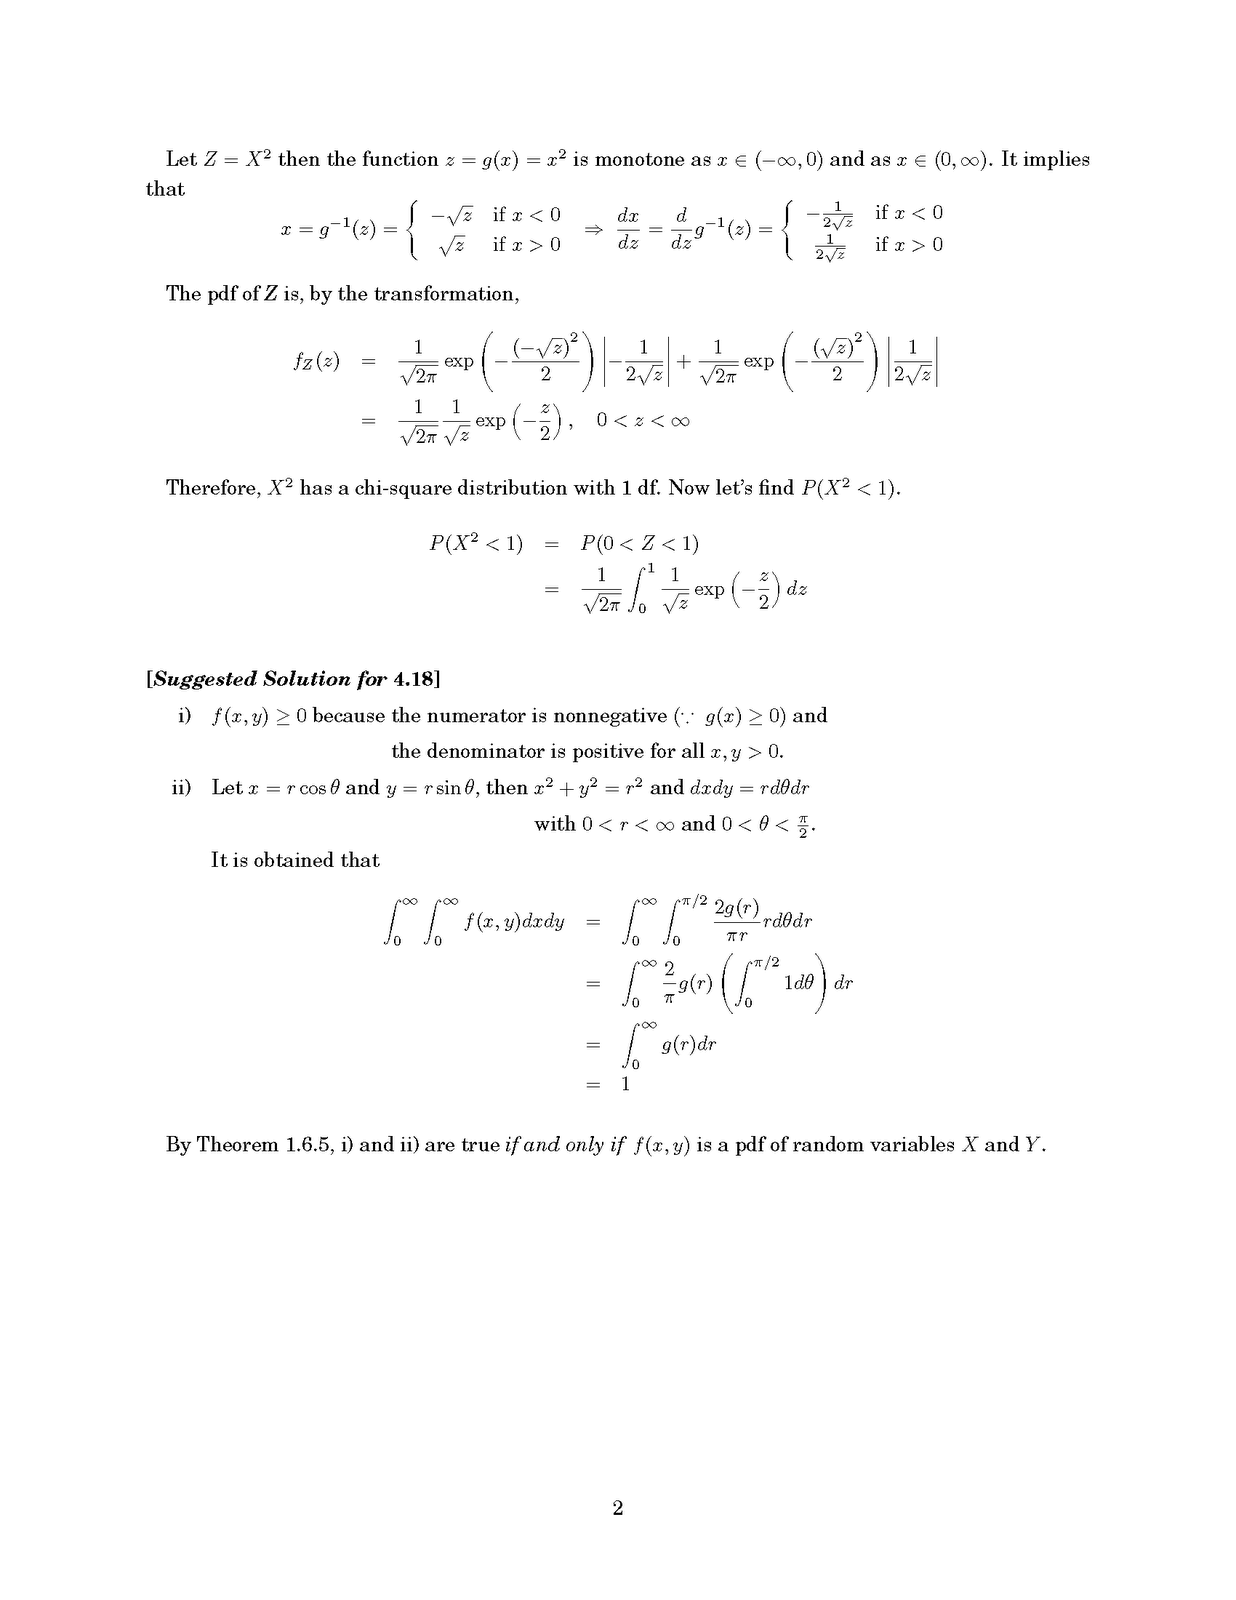 [Statistical Inference - 2nd Edition by Casella and Berger] A suggested  solution for E.4.14 & 4.18